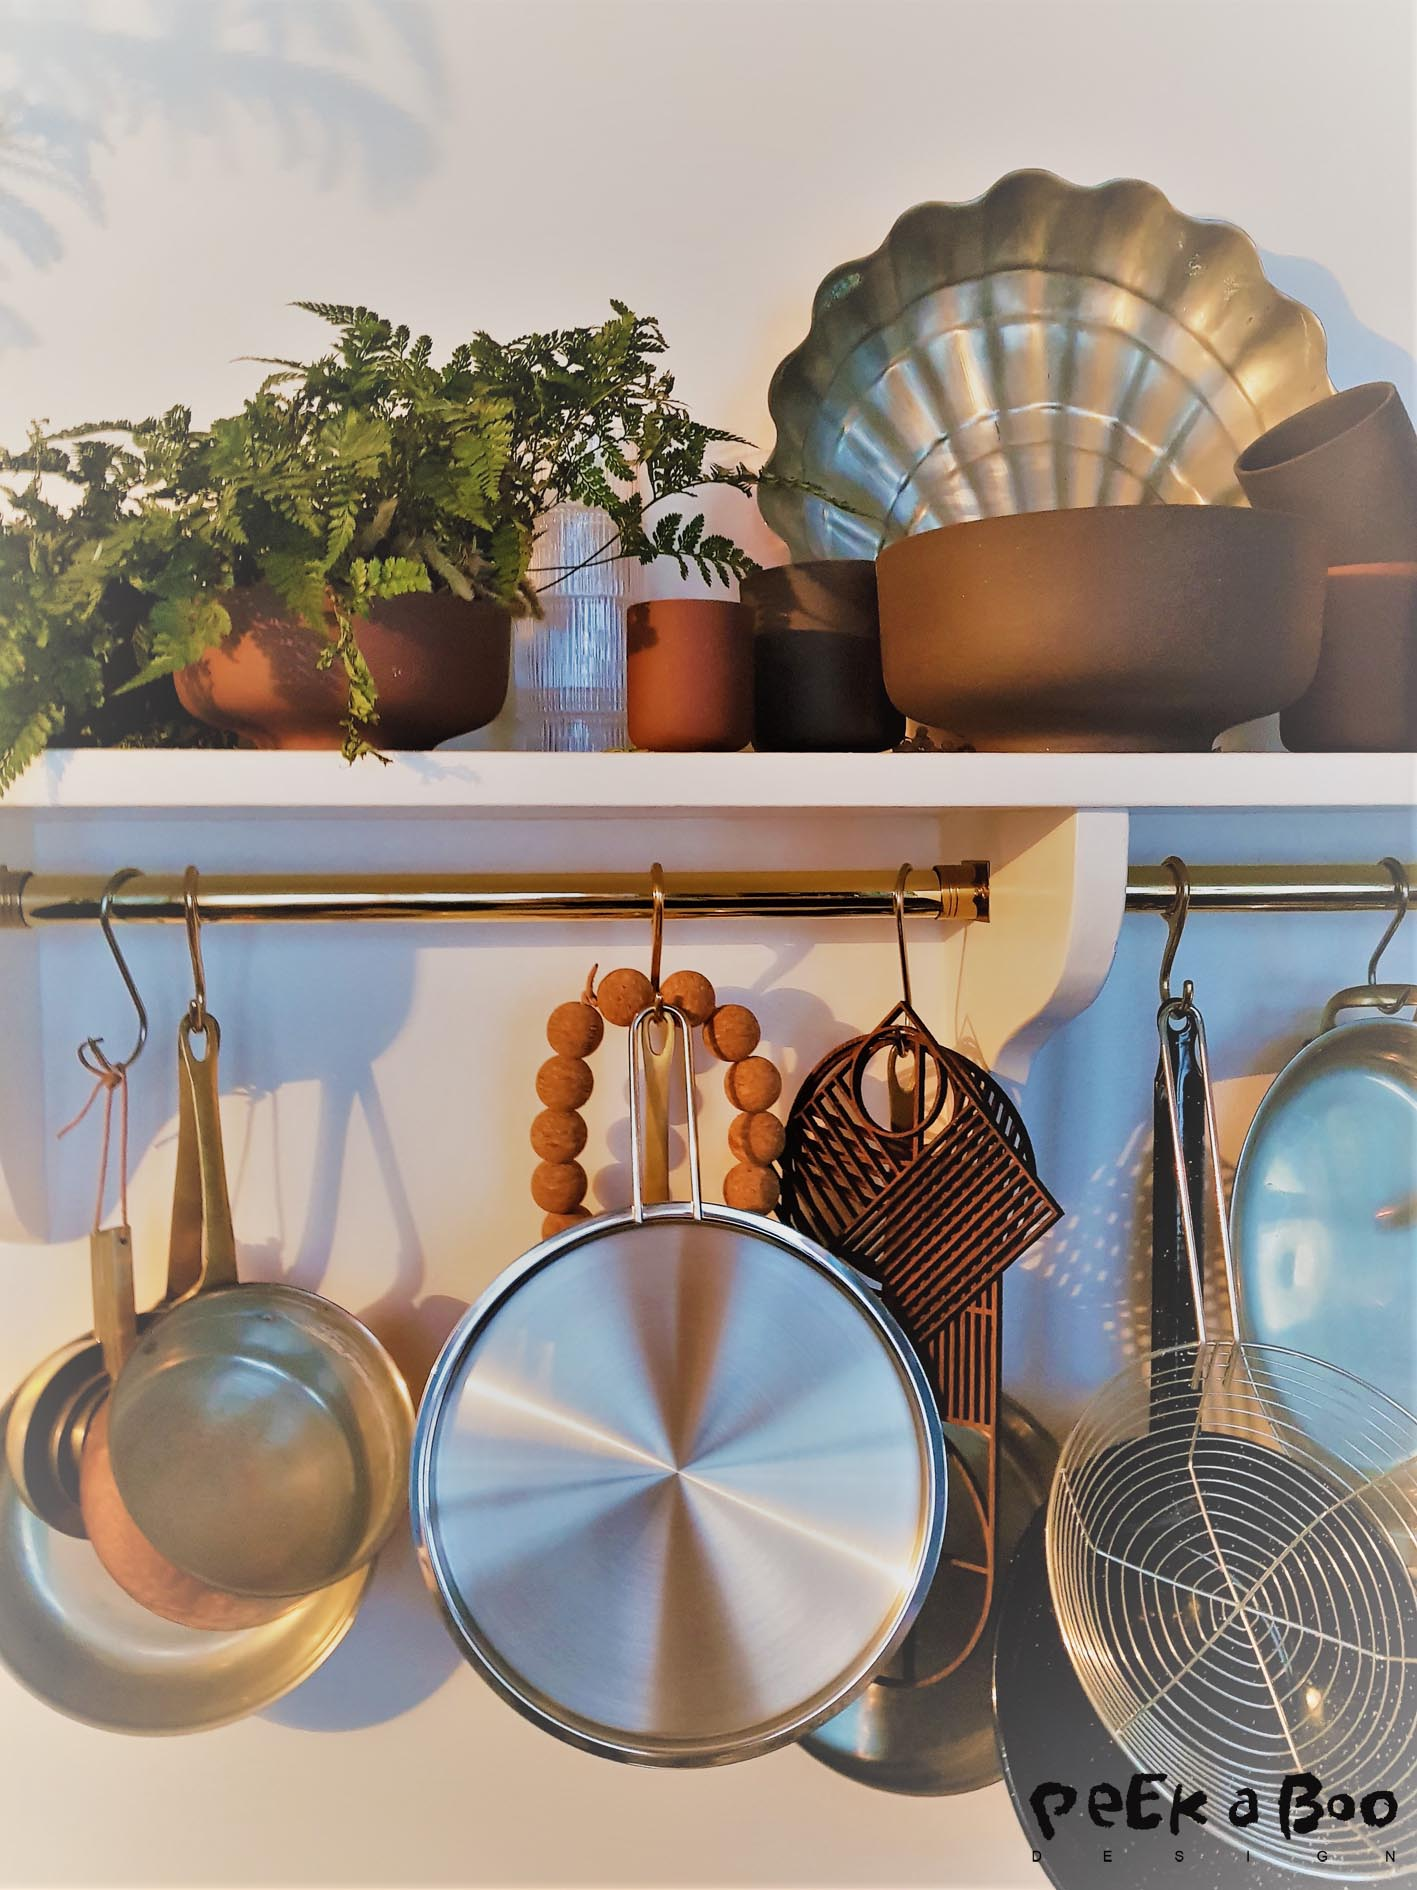 Details from the kitchen of Ferm Livings showroom.